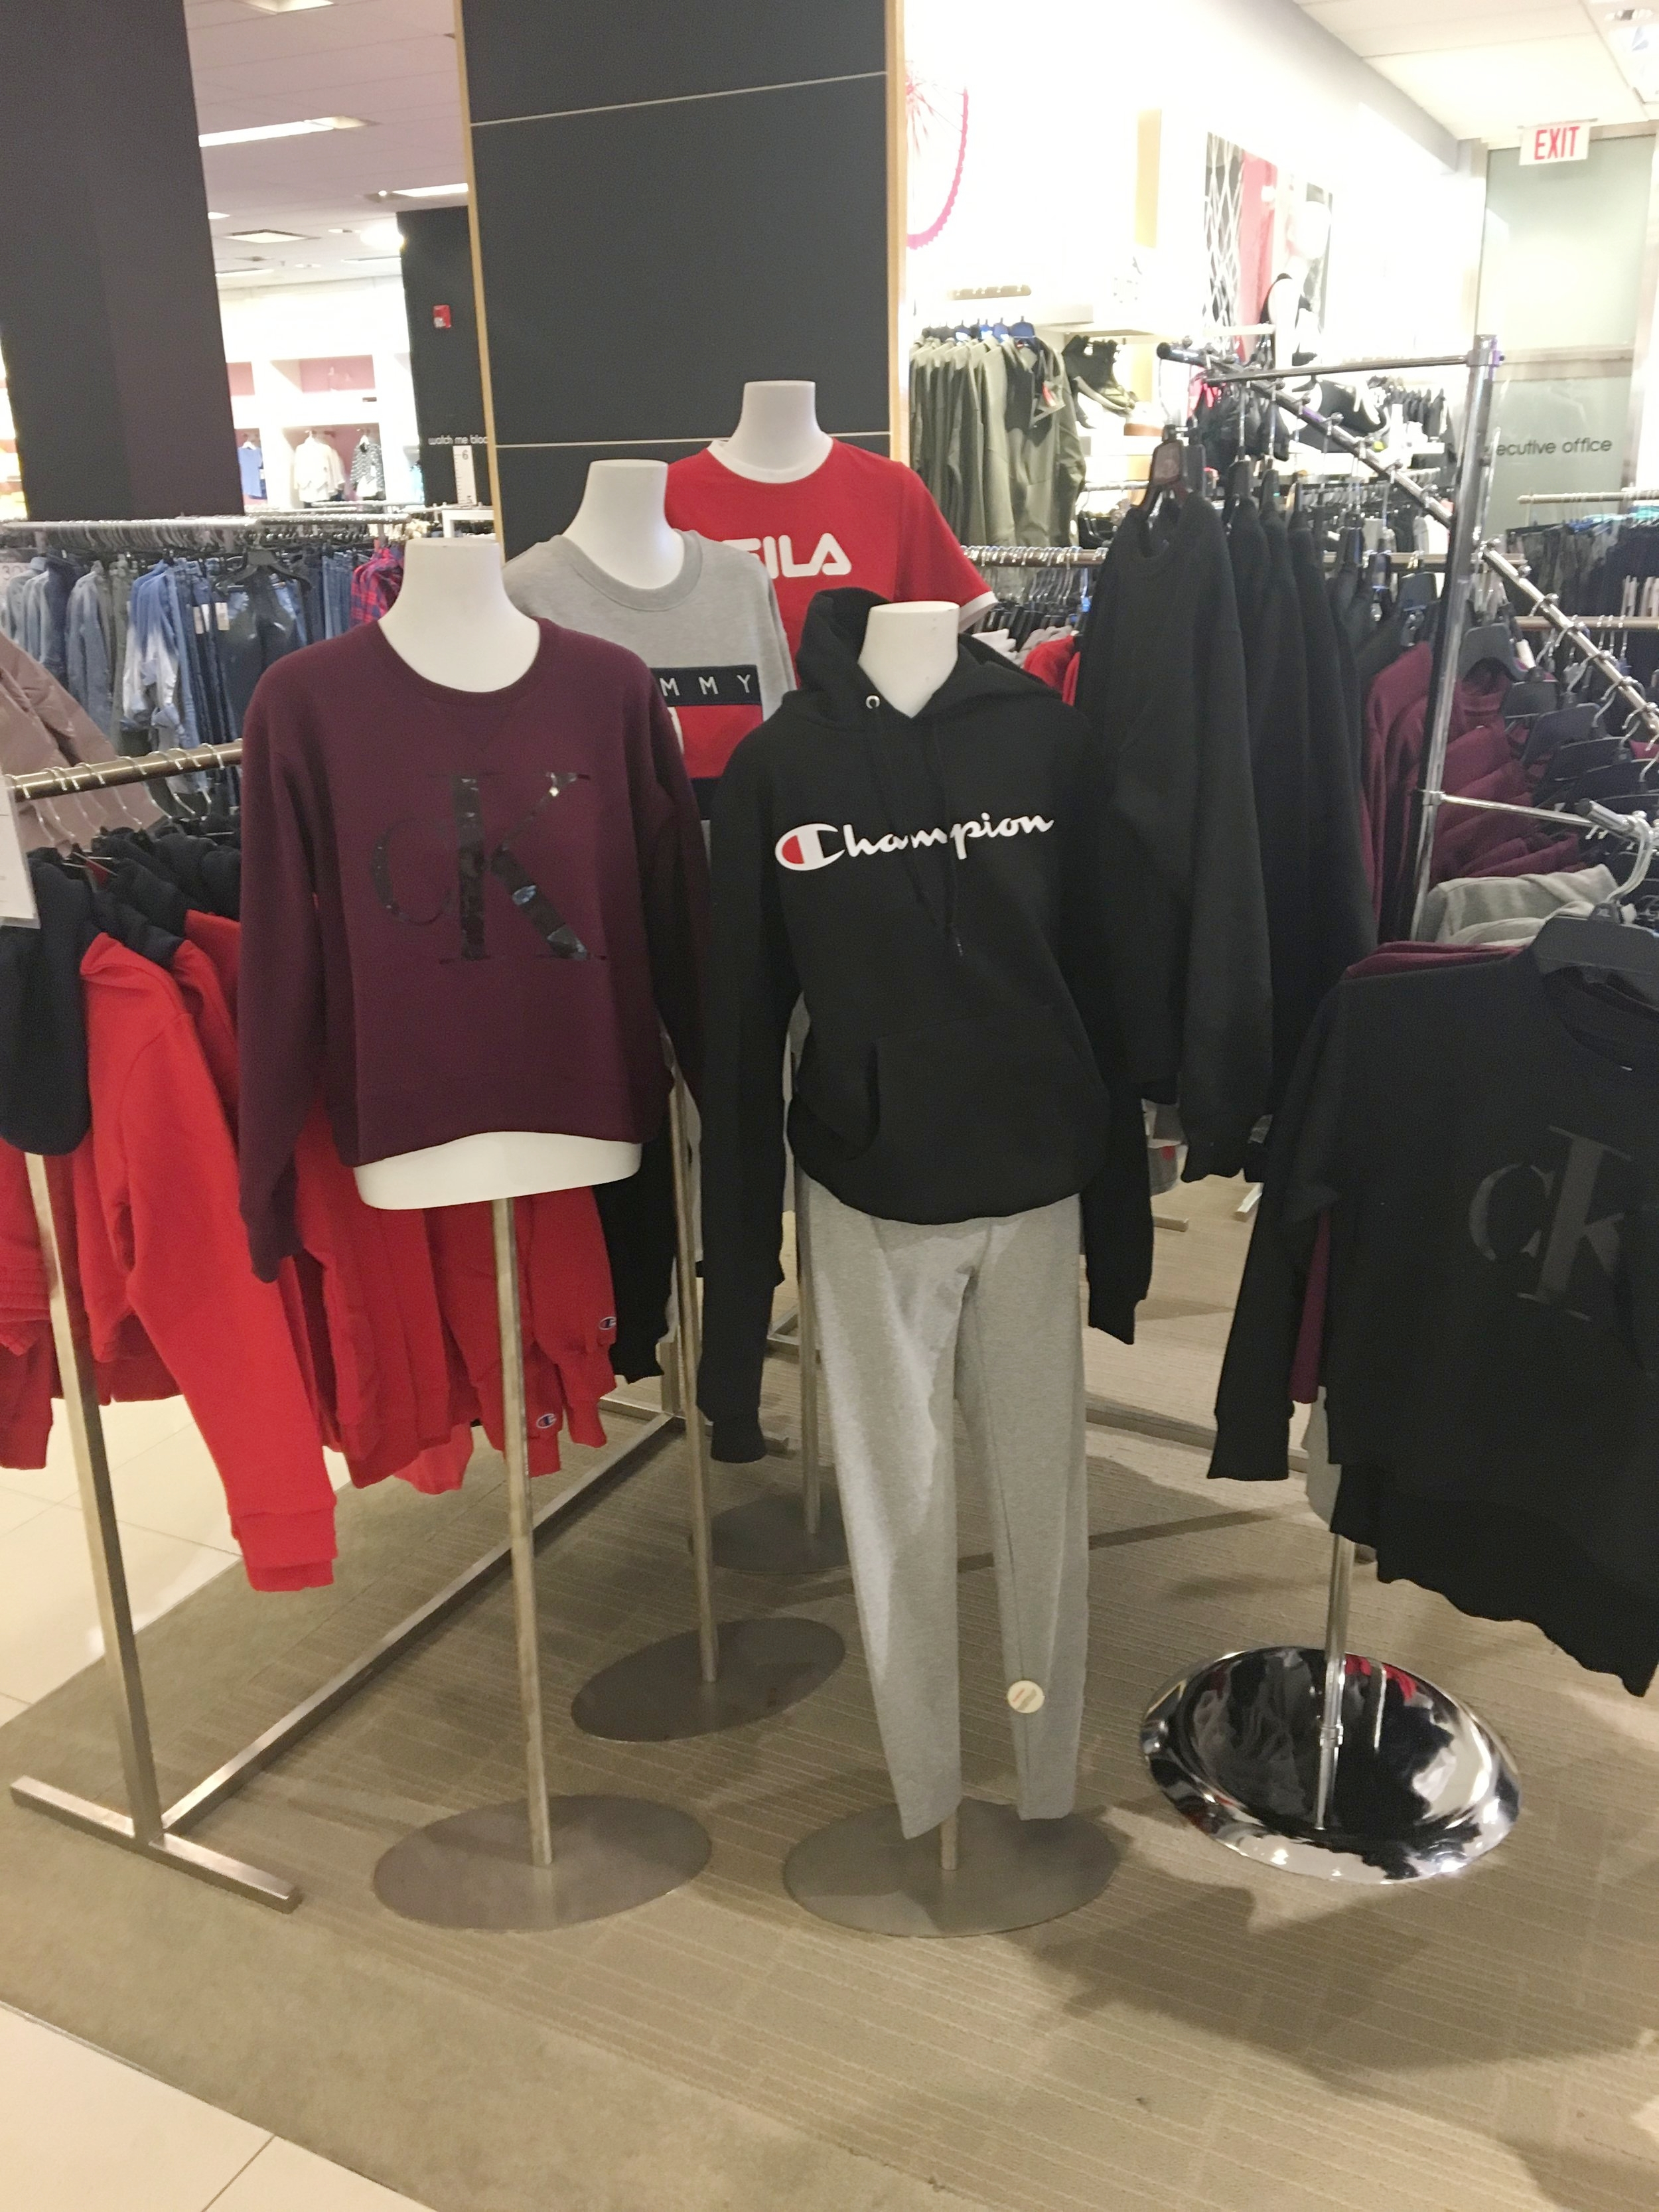 Throw back sweatshirts are all the rage! Brands like  Champion ,  CK  and  Tommy Hilfiger  are a hot item.